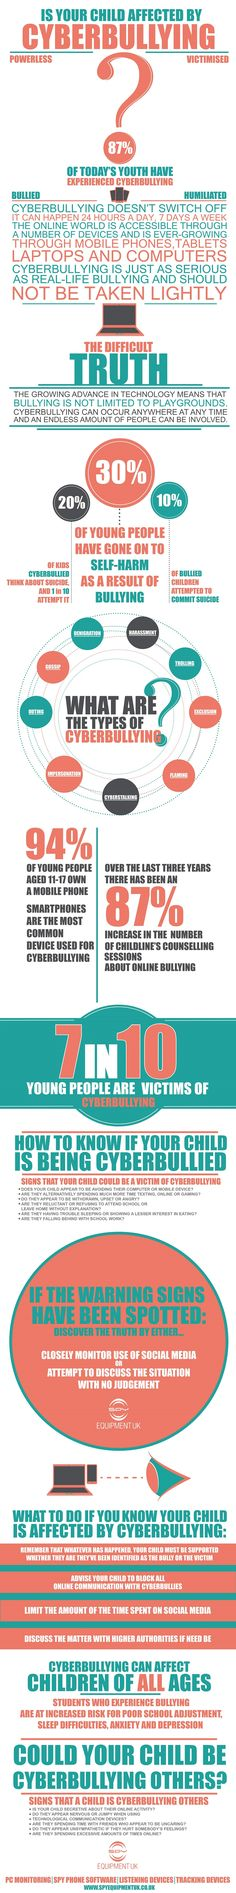 Is Your Child Being Bullied Online? Infographic - http://elearninginfographics.com/is-your-child-being-bullied-online/